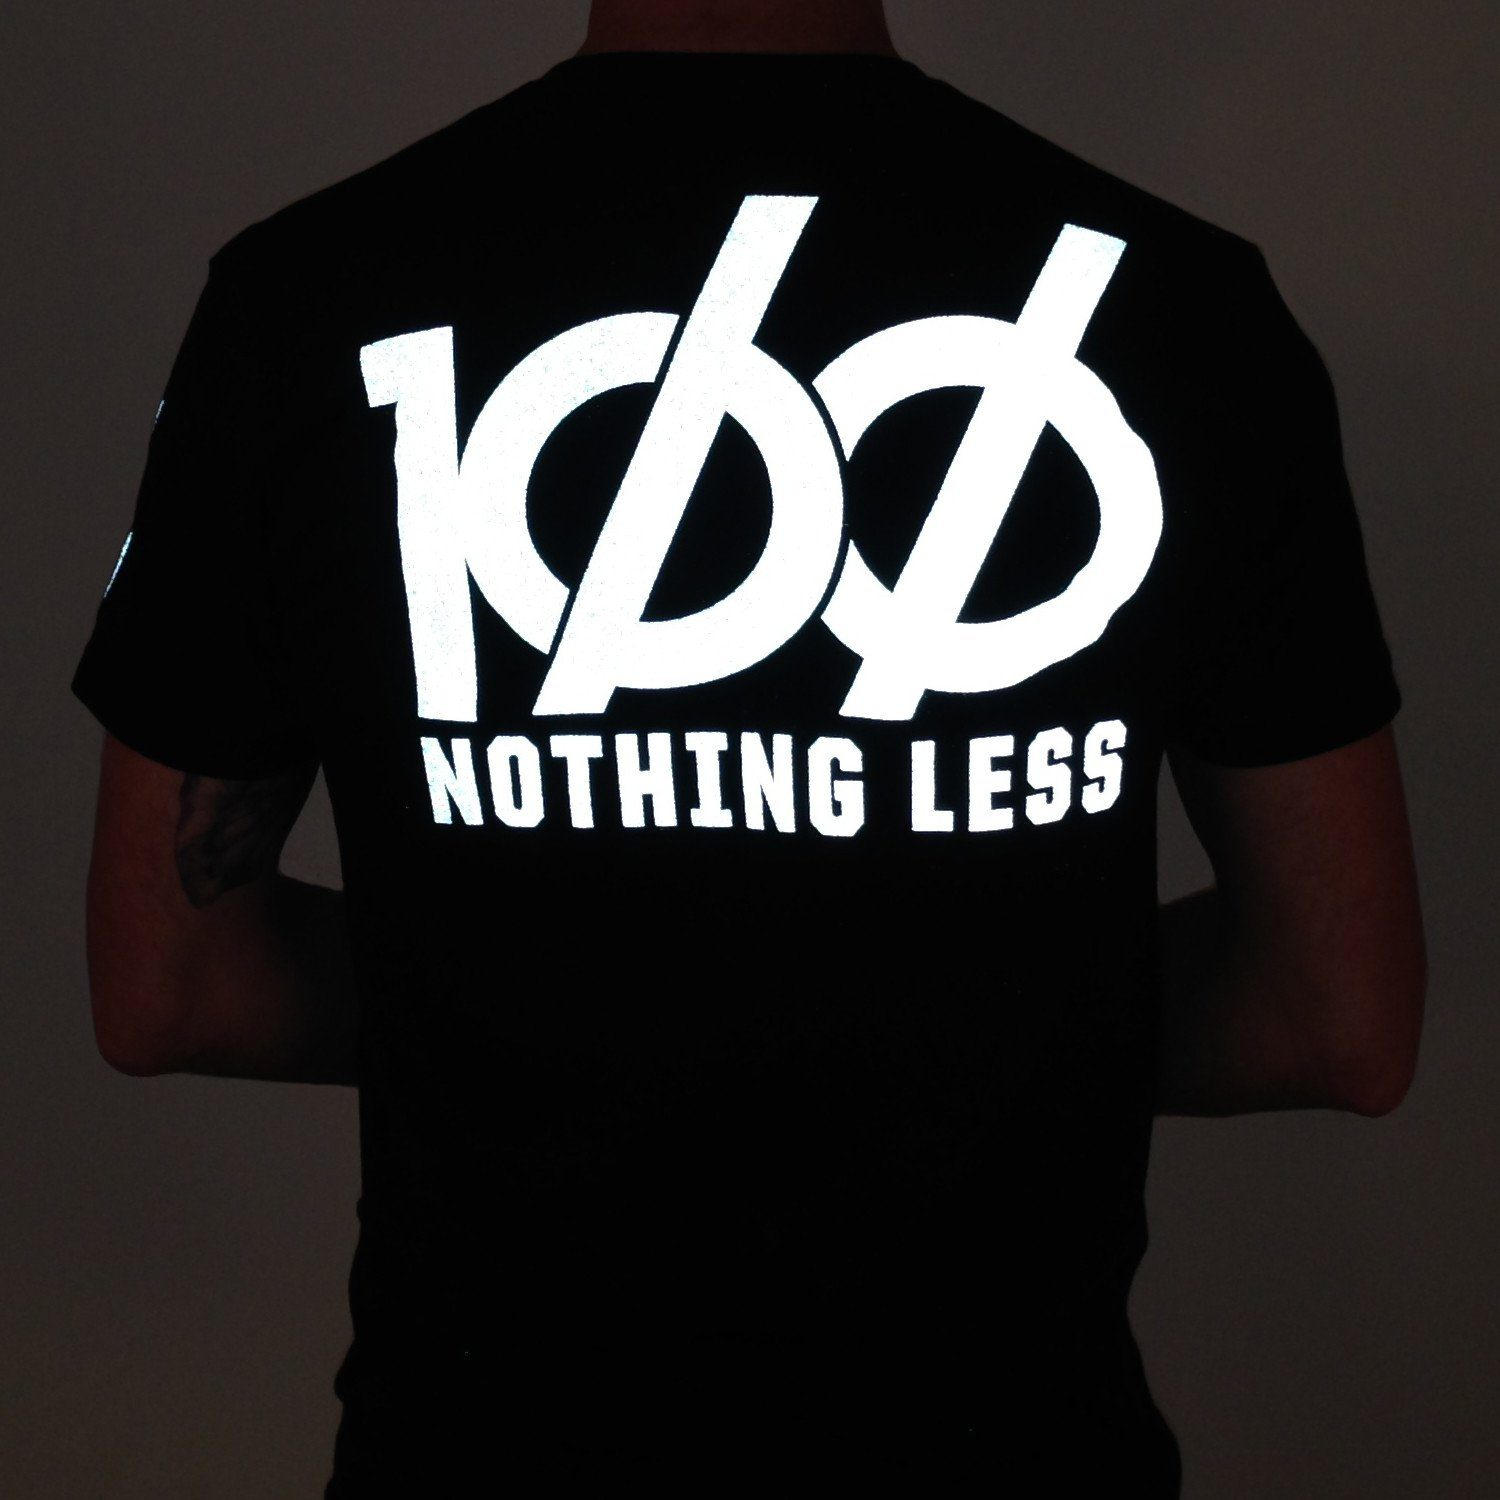 KB 'Undefeated' 3M Reflective T-Shirt